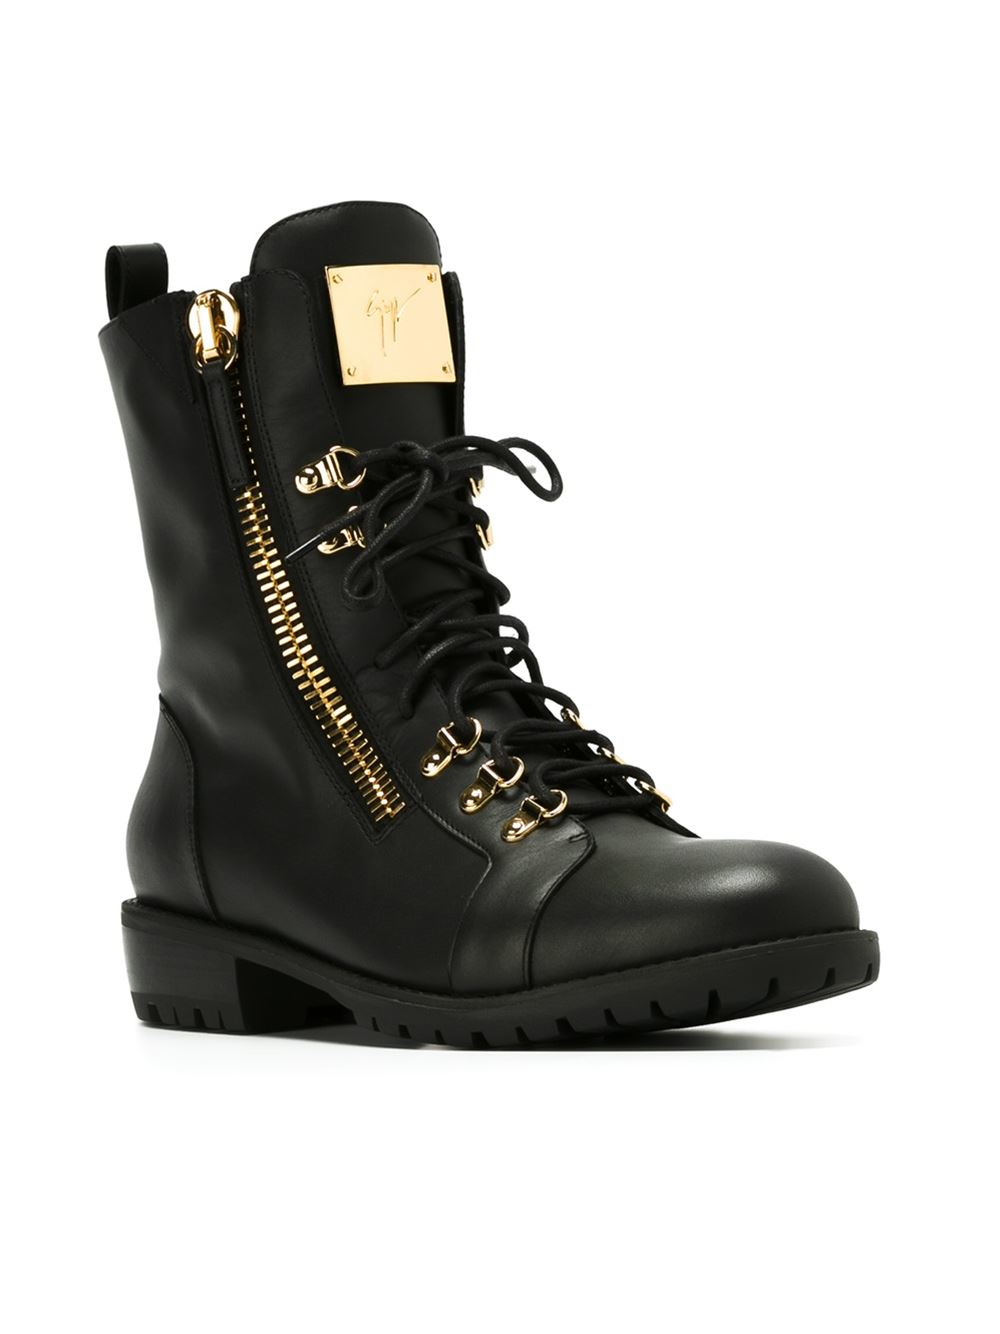 Giuseppe Zanotti Lace up Boots In Black For Men Lyst